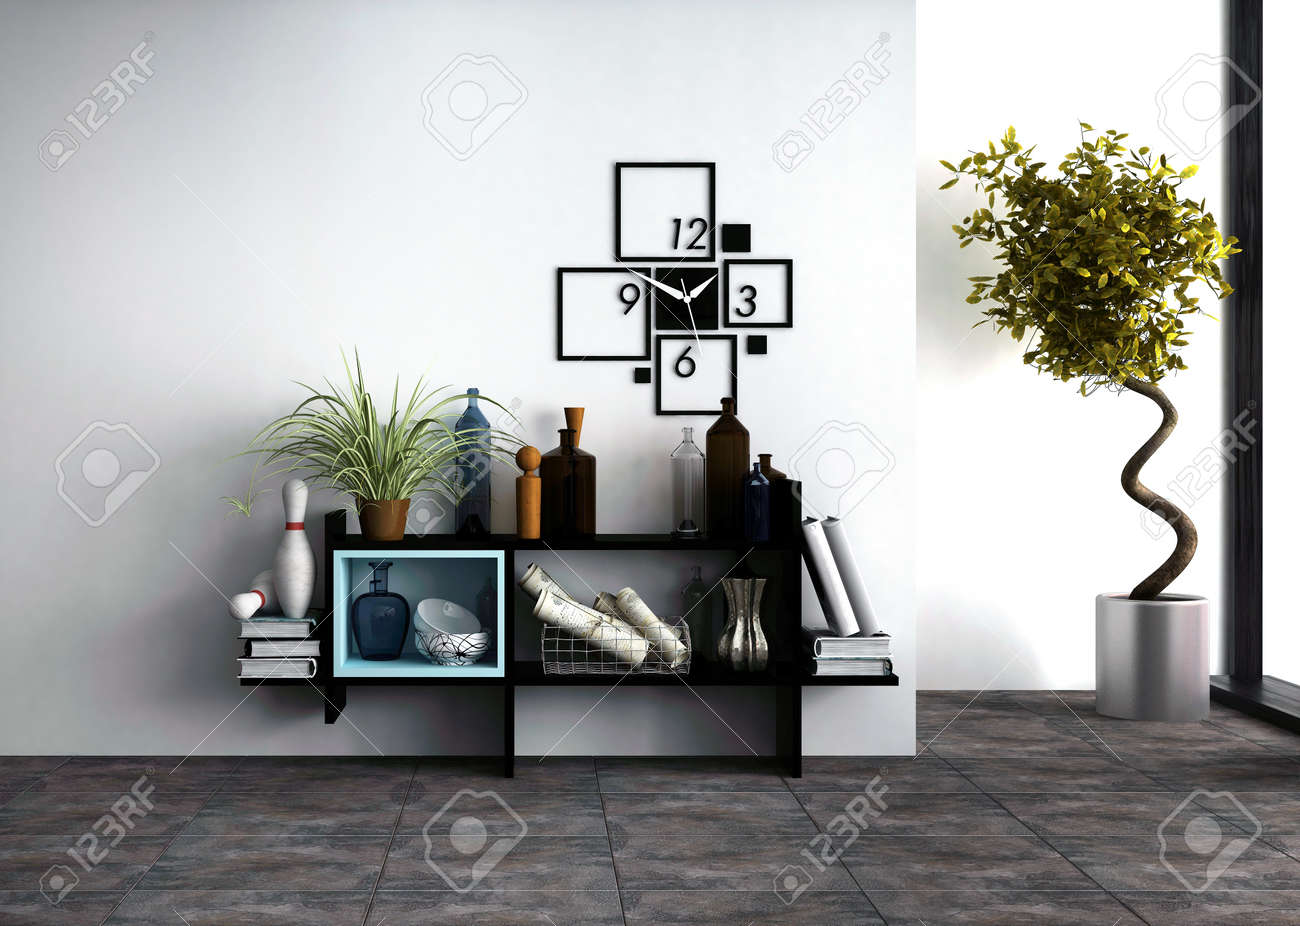 Modern Interieur Wit : Wall mounted shelves with personal effects and a designer clock